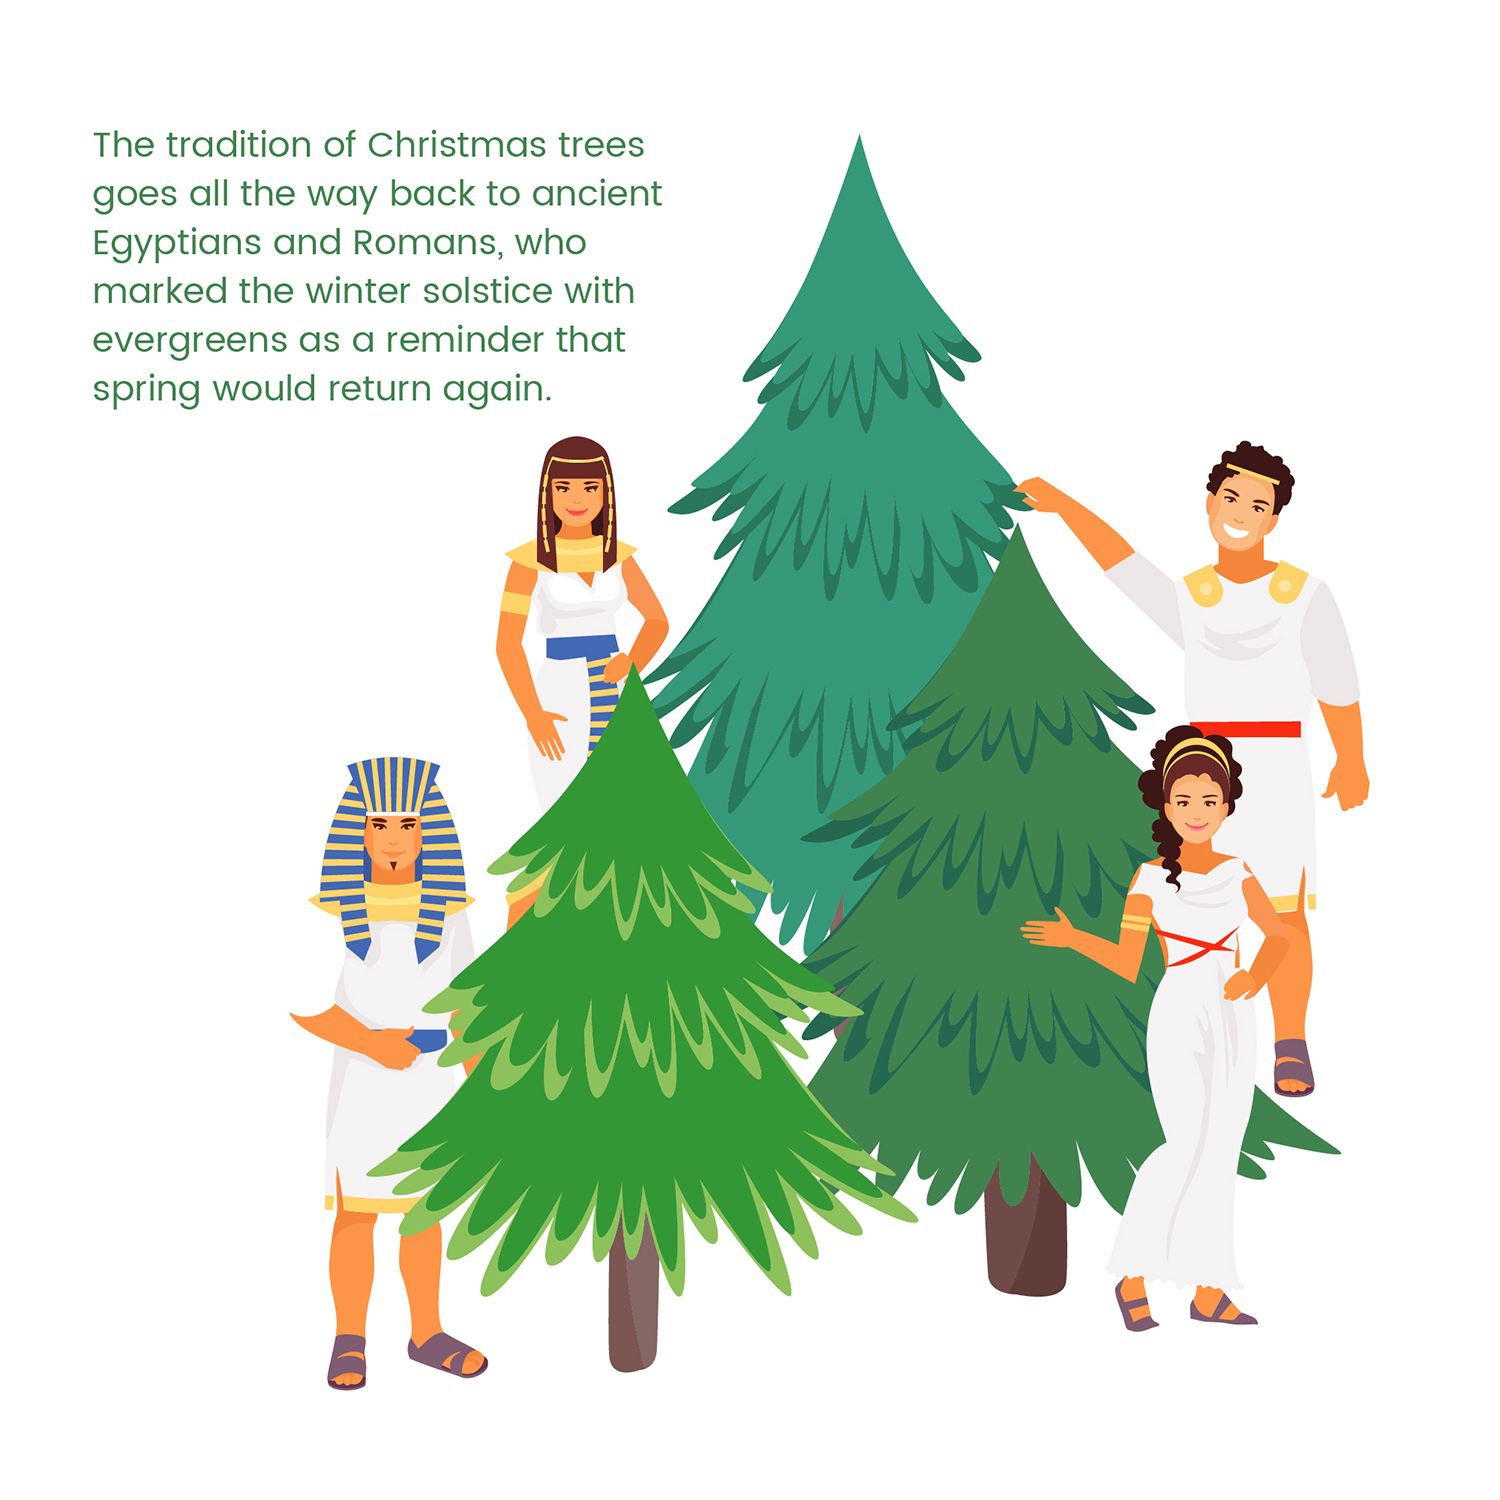 Does the iconic Christmas tree have connections to other global holidays and traditions?